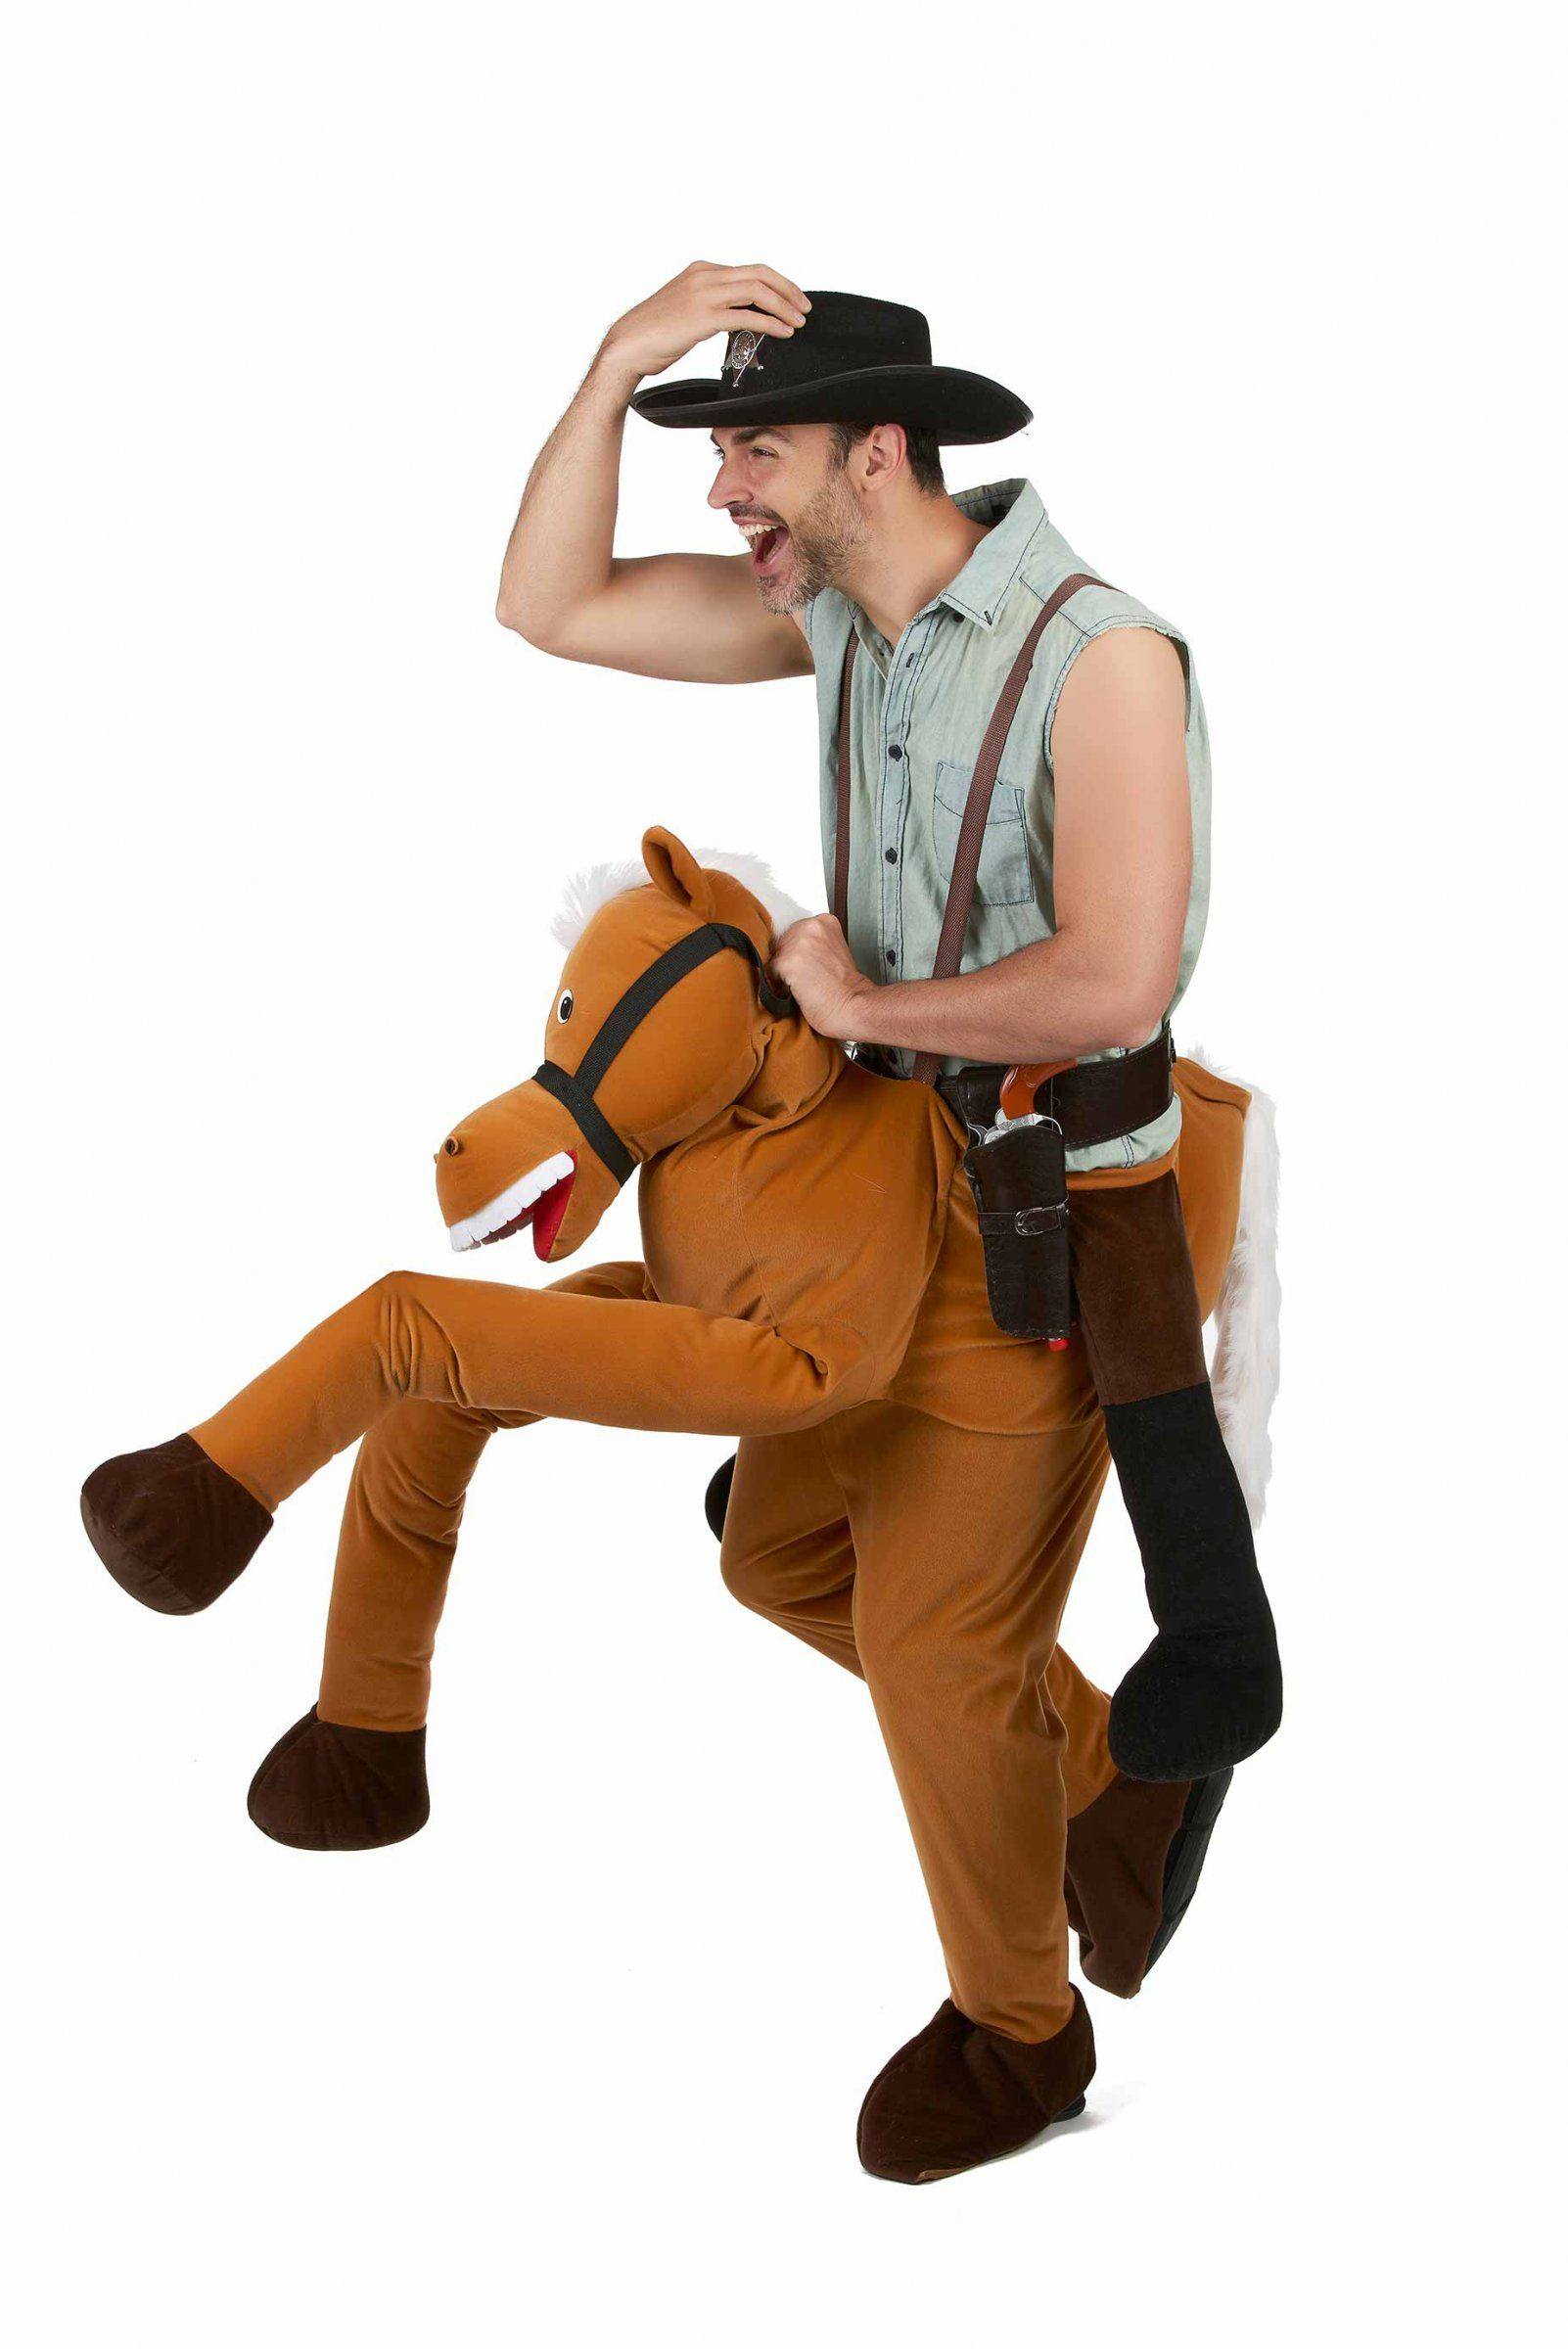 Horse Carry Me Costume for Adults  This horse carry me costume for adults  includes trousers in the shape of a horse. The trousers are secured by two  ... d04a5bd3ac609